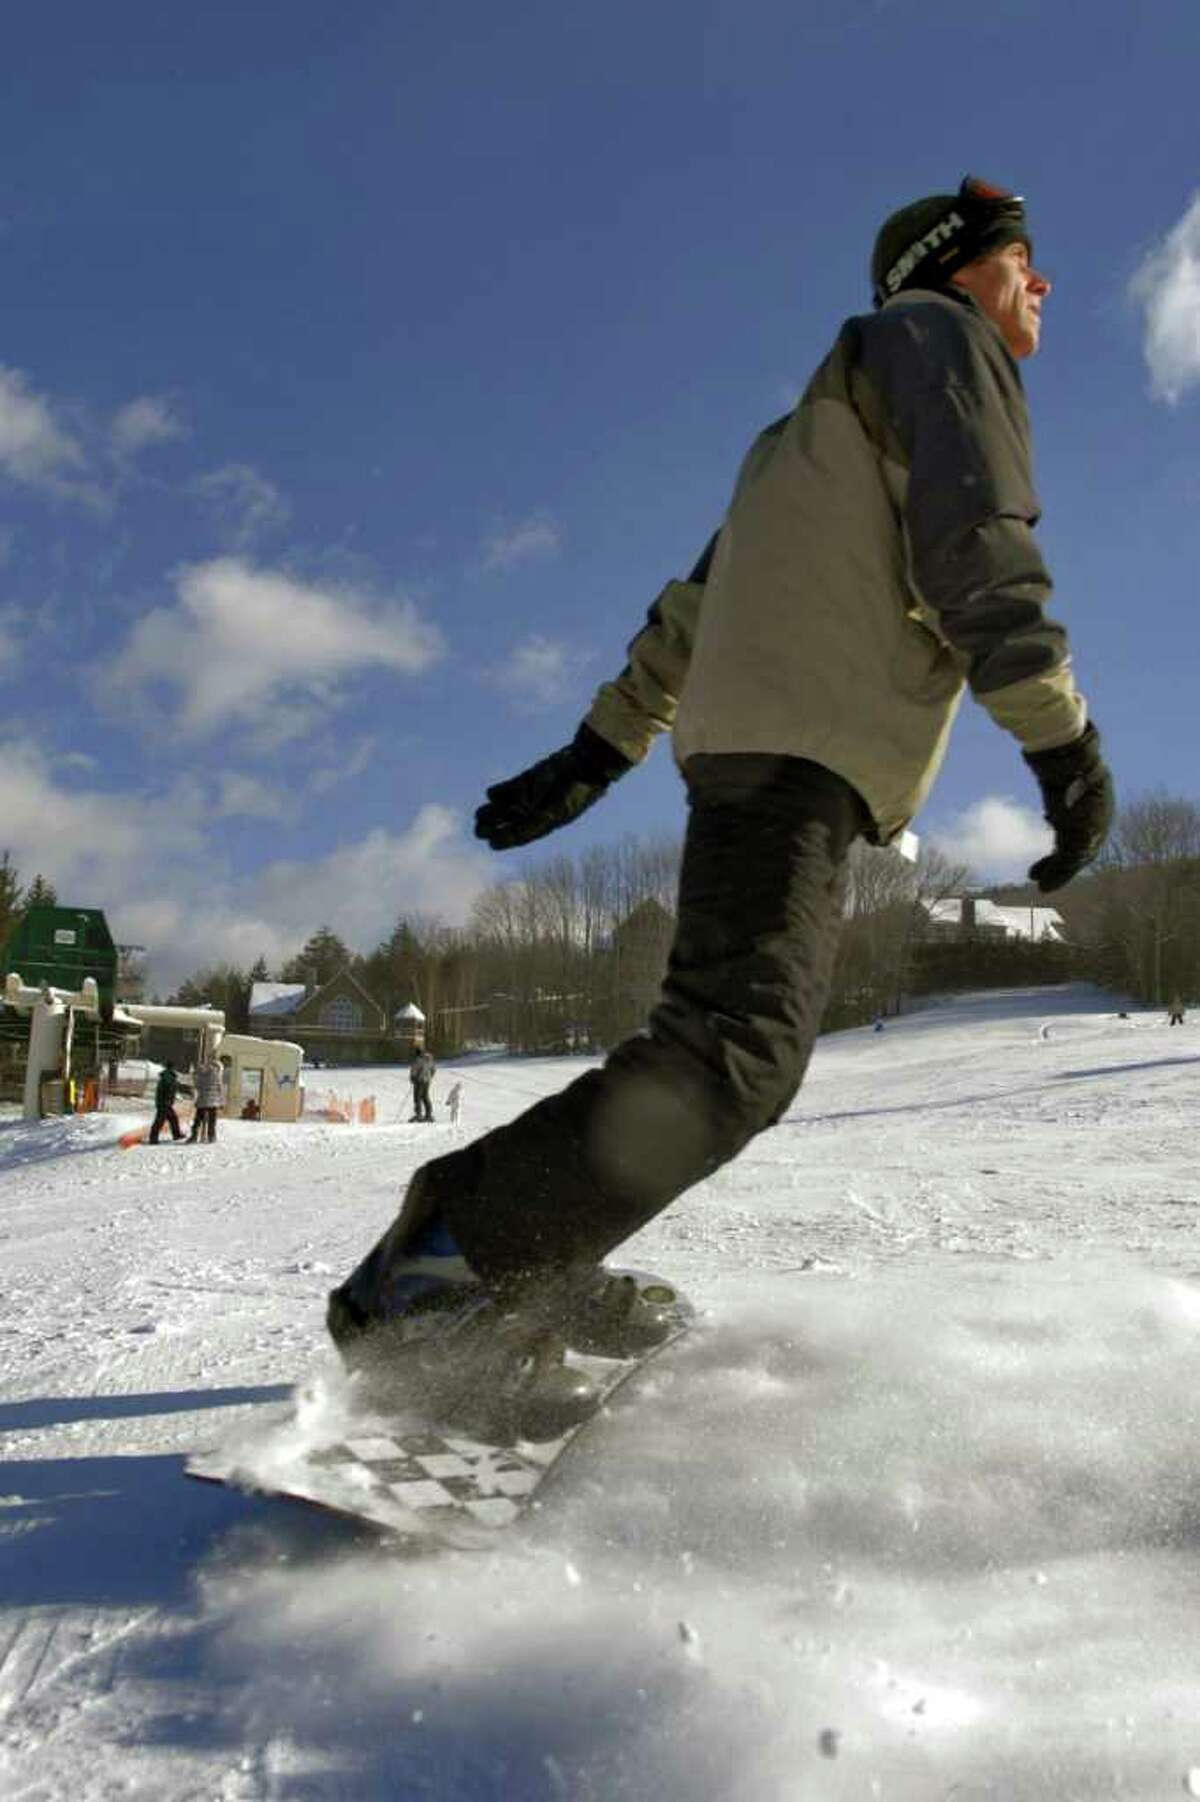 Windham Mountain contends unfair competition from state-run Belleayre as a snowboarder shows his prowess on the snowboard at the private operation. (PHILIP KAMRASS/TIMES UNION archive)